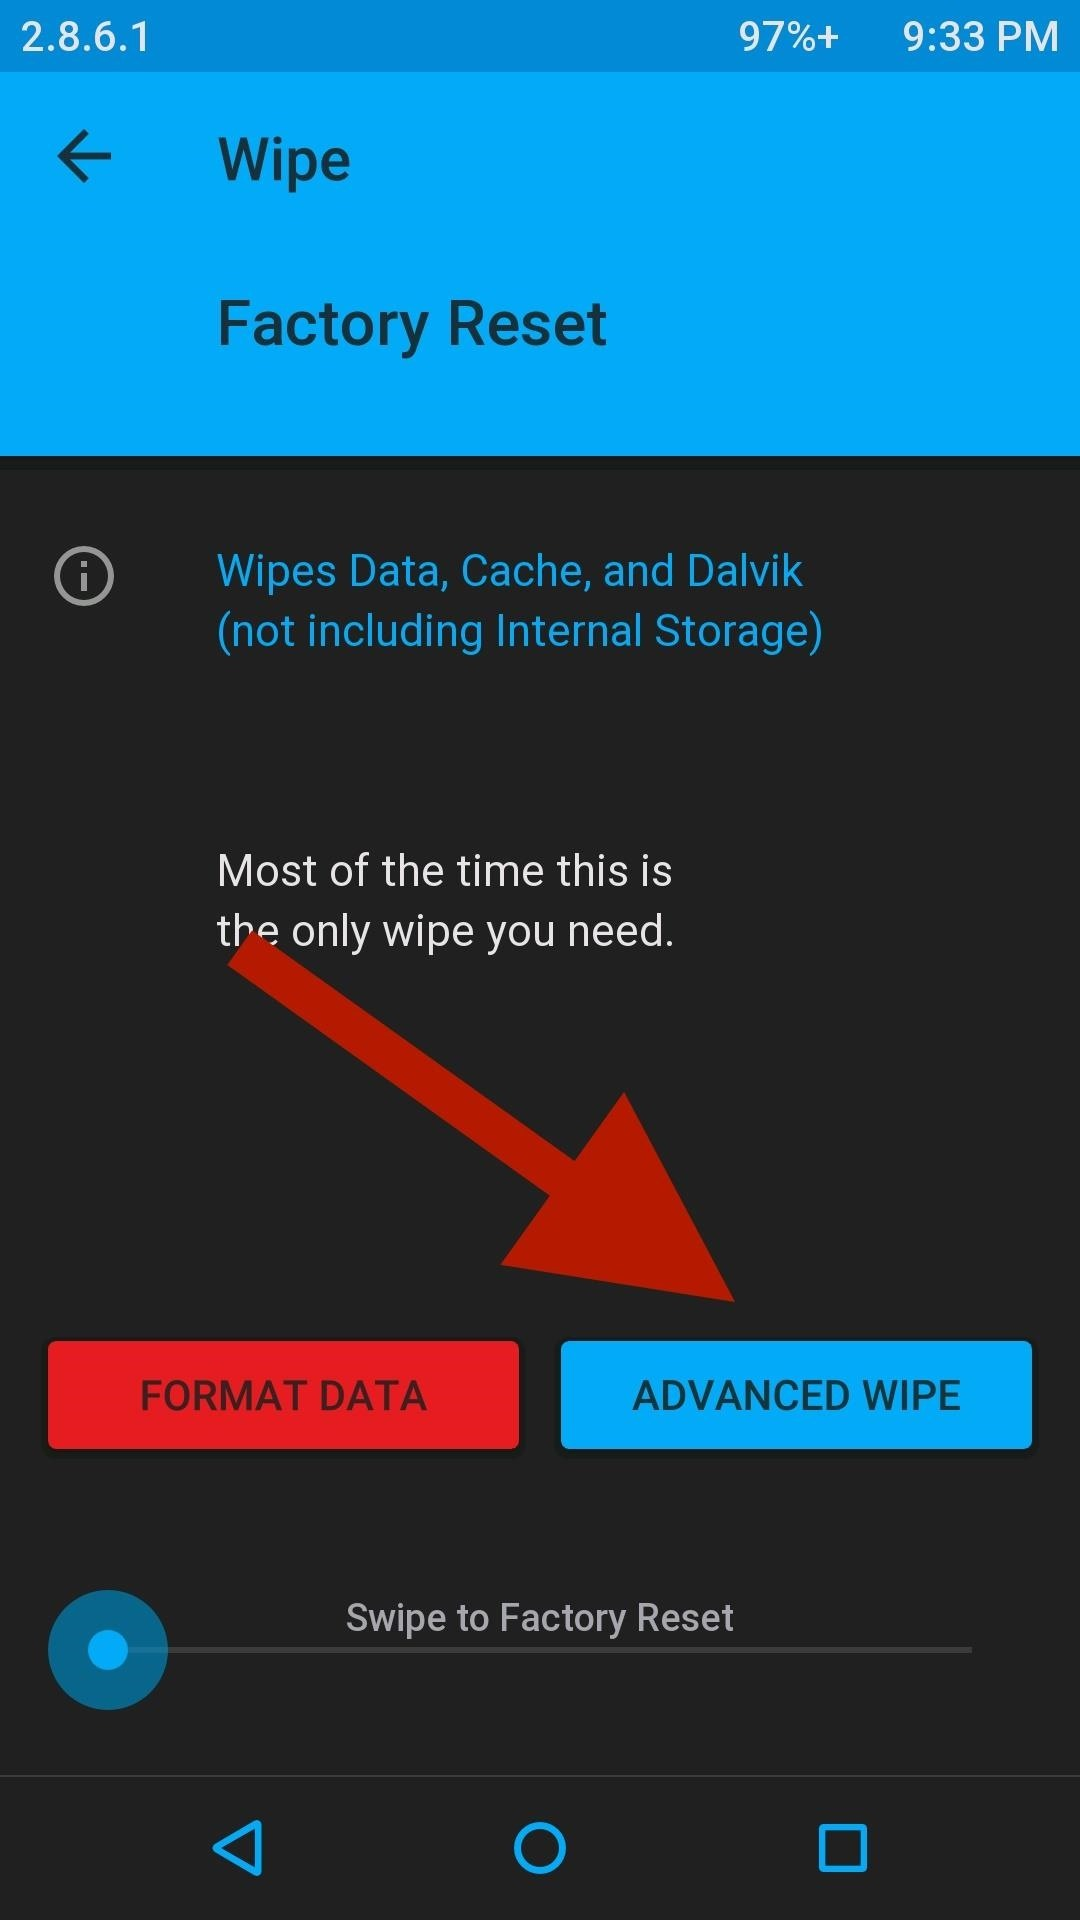 The Best Way to Wipe Data & Completely Delete Your Data on